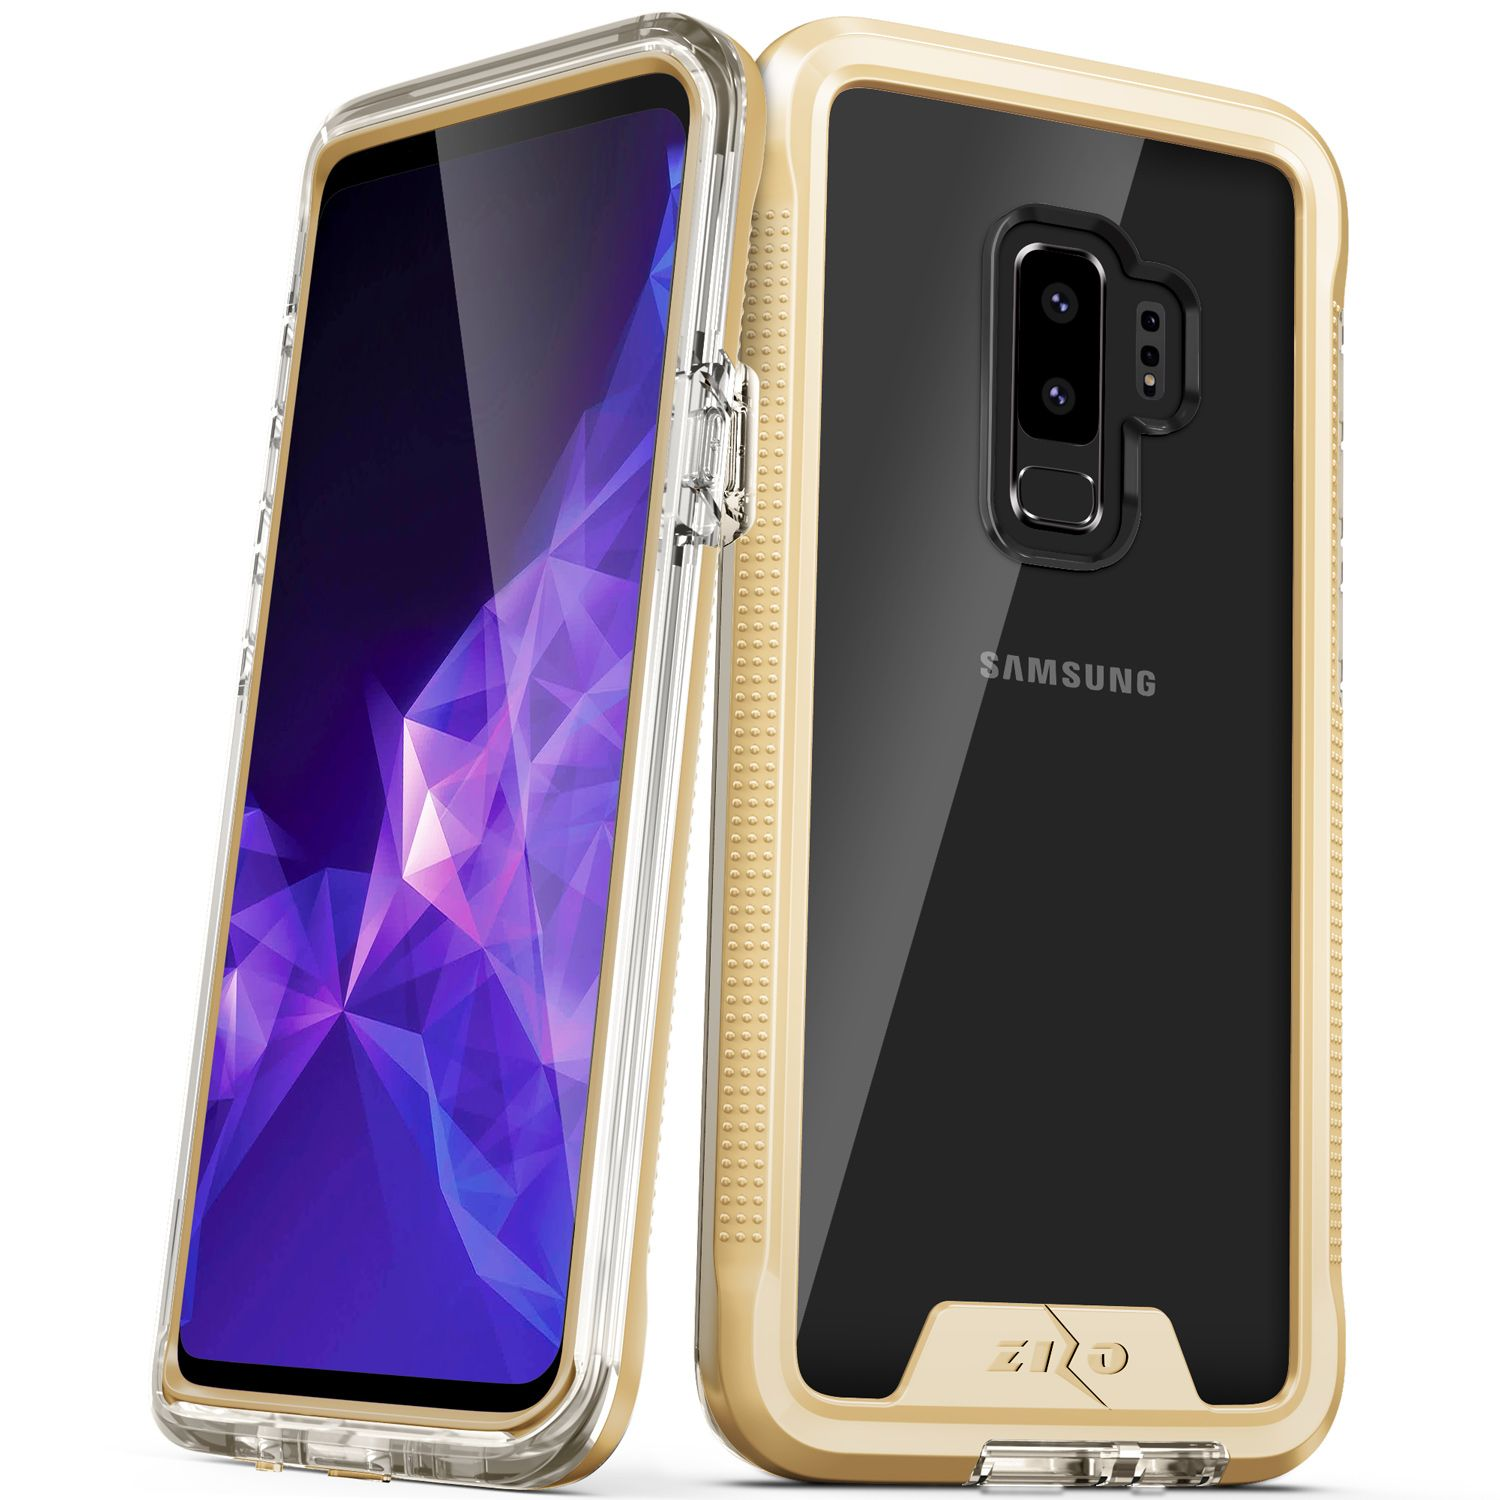 Zizo Ion Series Compatible With Samsung Galaxy S9 Plus Case Military Grade Drop Tested With Tempered Glass Screen Protector Gold Clear 1ionc Samgs9plus Gdcl Tempered Glass Screen Protector Samsung Galaxy S9 Glass Screen